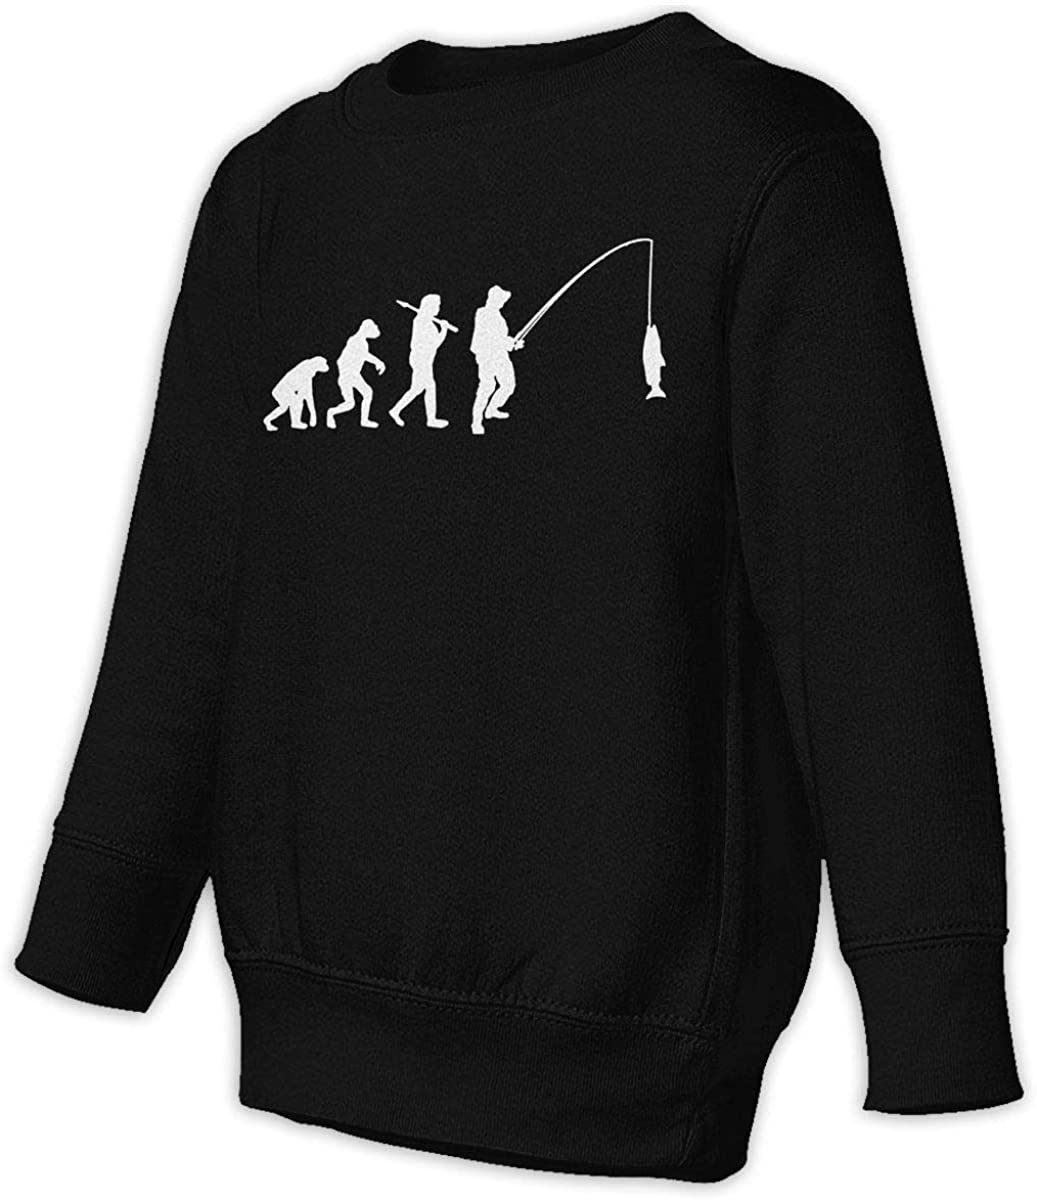 wudici Evolution of Fisherman Fishing Boys Girls Pullover Sweaters Crewneck Sweatshirts Clothes for 2-6 Years Old Children